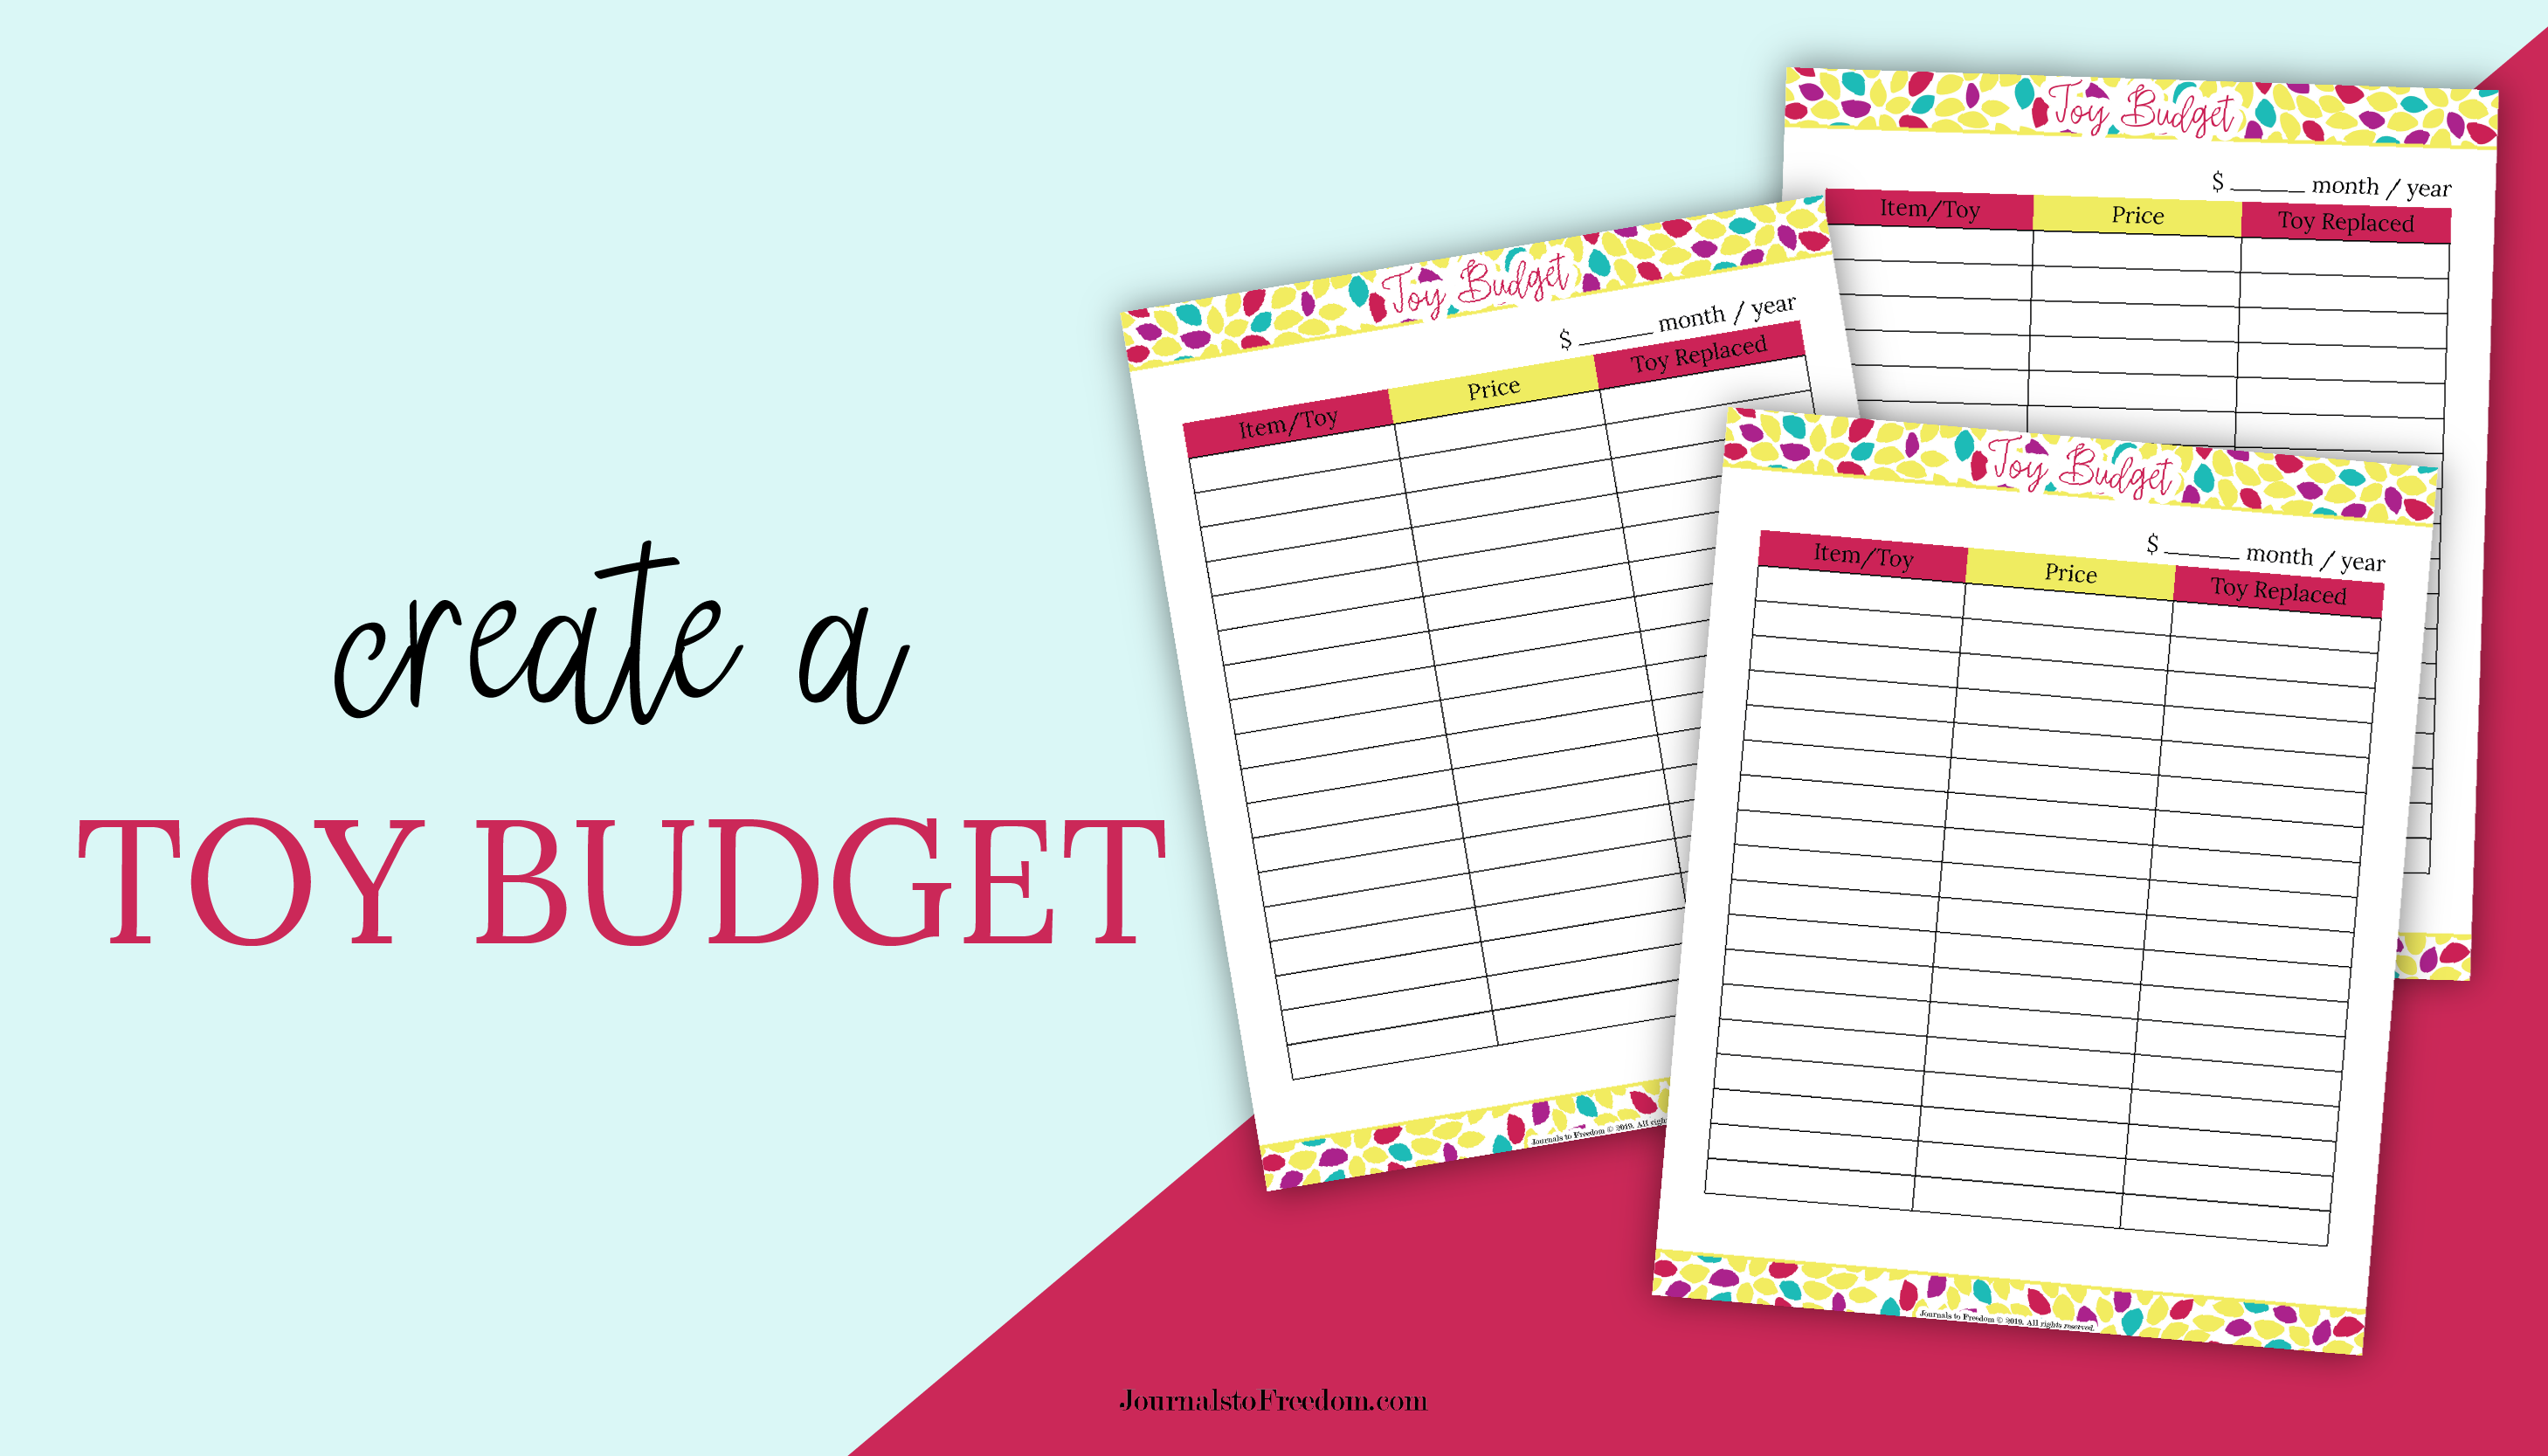 Create and stick to a toy budget